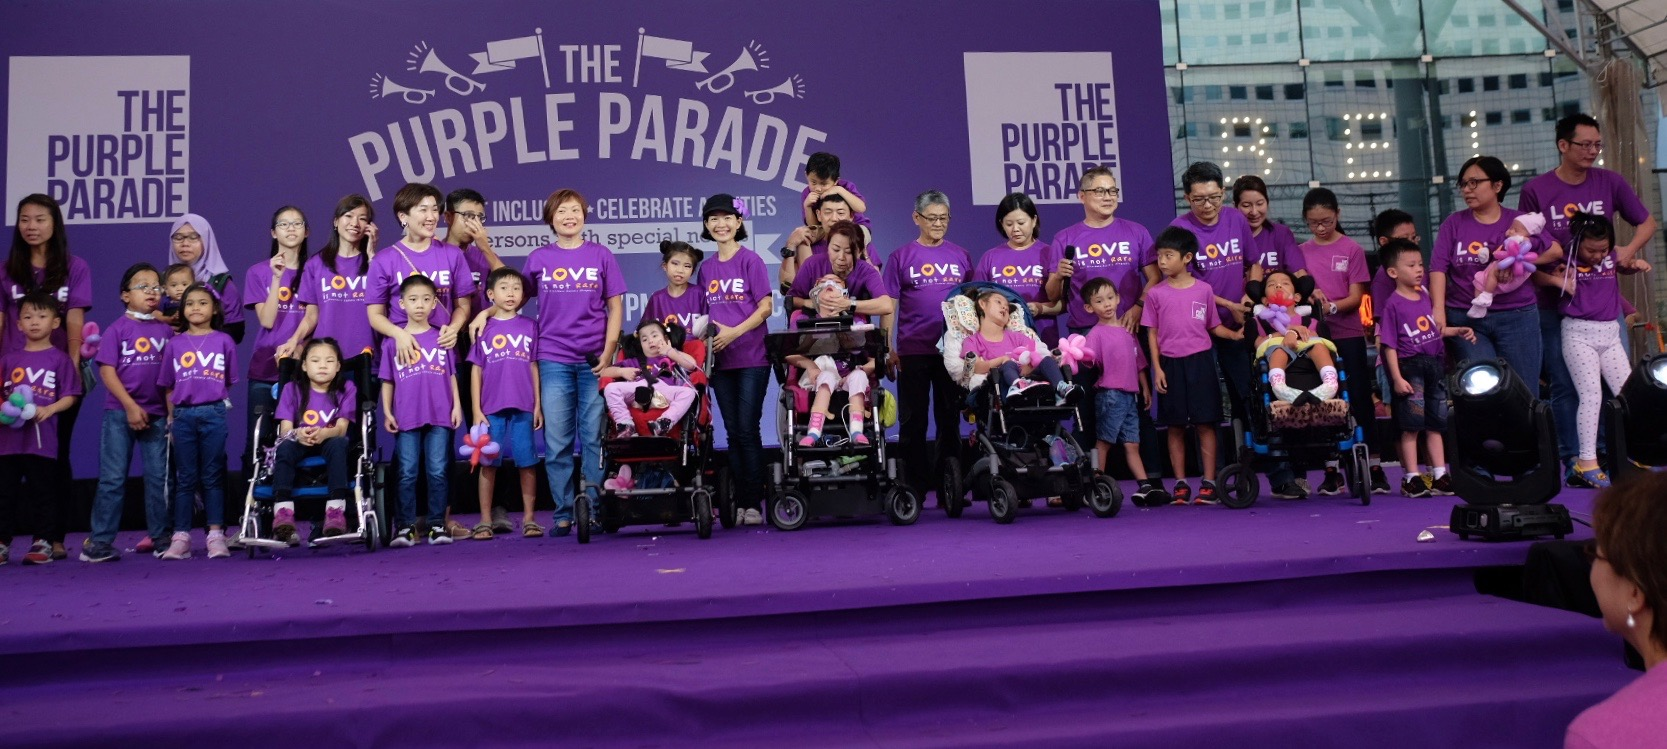 Voices of Rare at The Purple Parade 2018 - Families of RDSS sang 'Love Is Not Rare' as one voice for their children living with rare disorders. Photo by Isabelle Lim.